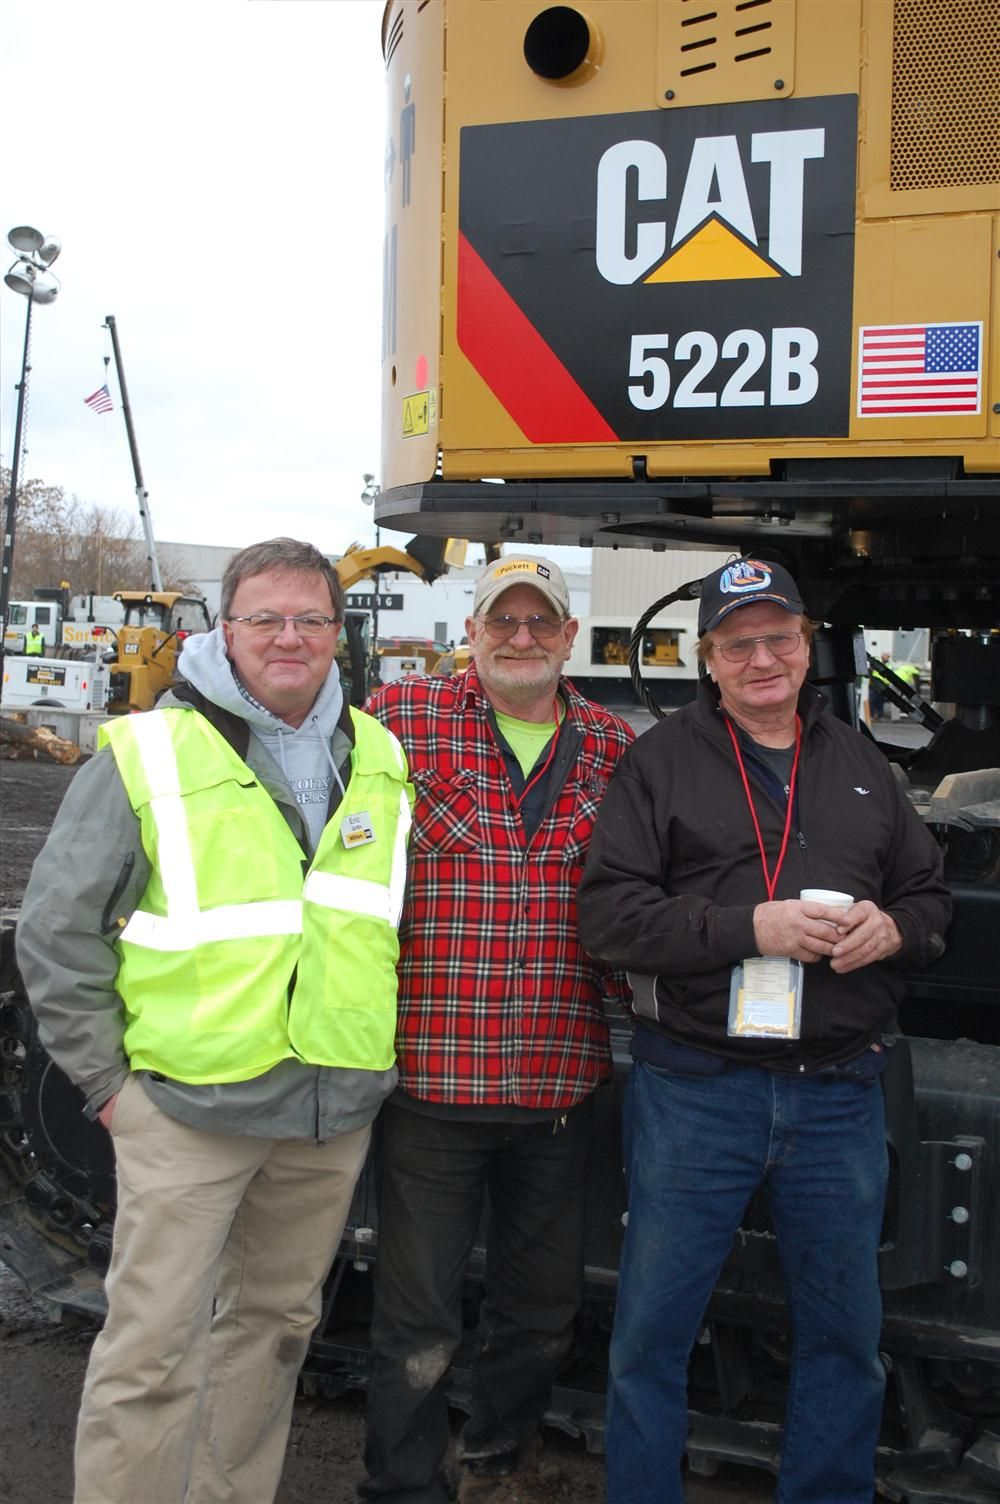 This group is being guided through a close inspection of the underside of a Cat 522B.  (L-R) are Eric Griffin of Milton CAT; Junior Raymond and Fred Groom of Slater Farms in Moravia, N.Y.